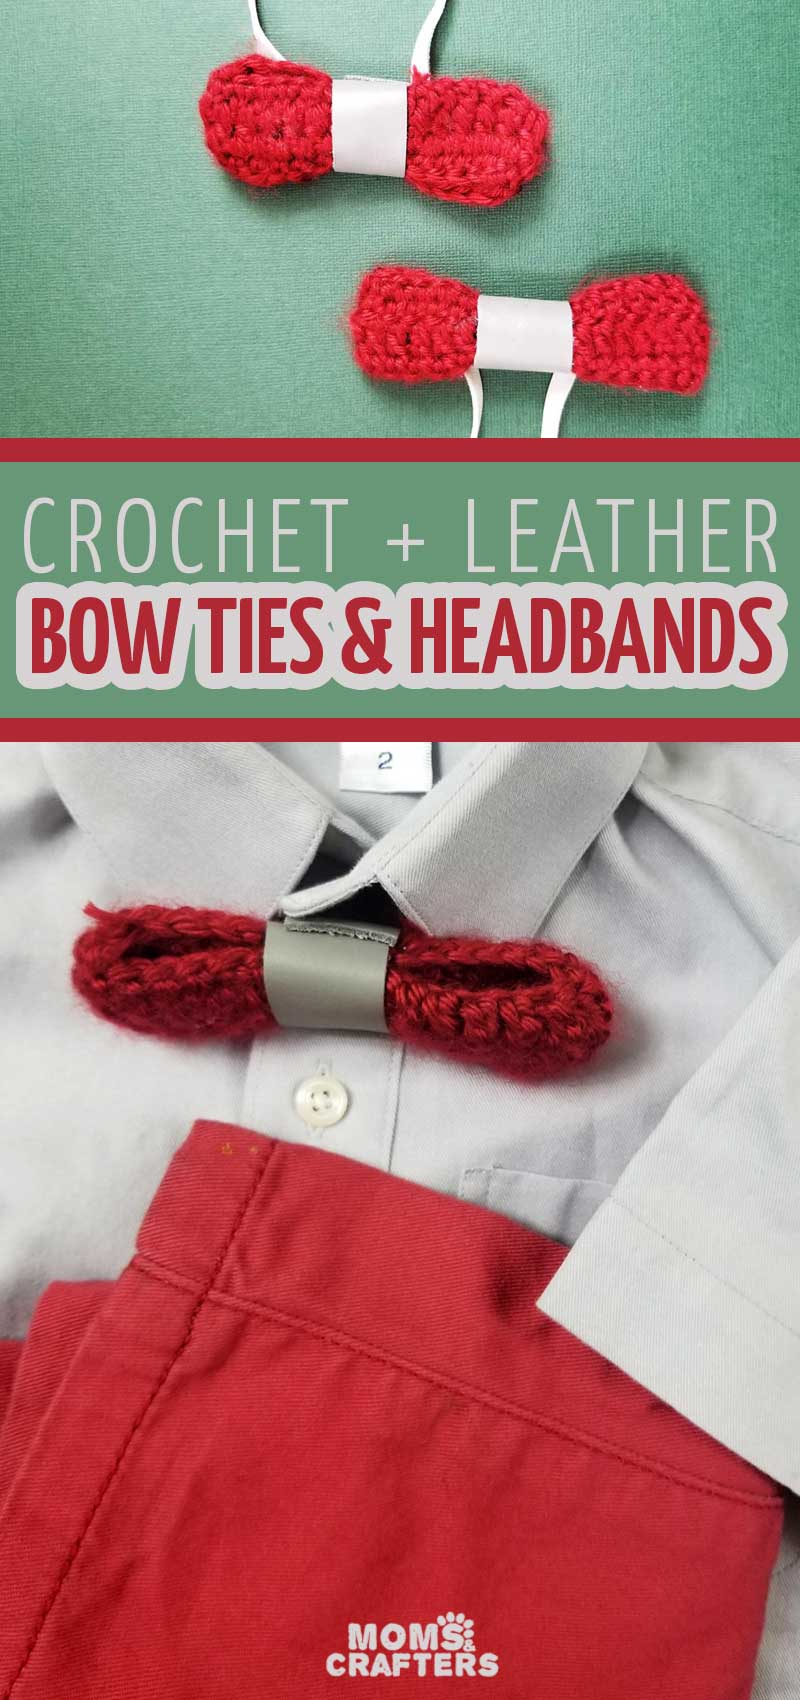 Click to learn how to crochet a bow and make the coolest leather accent bow ties and headbands - perfect holiday accessories for boys and girls!